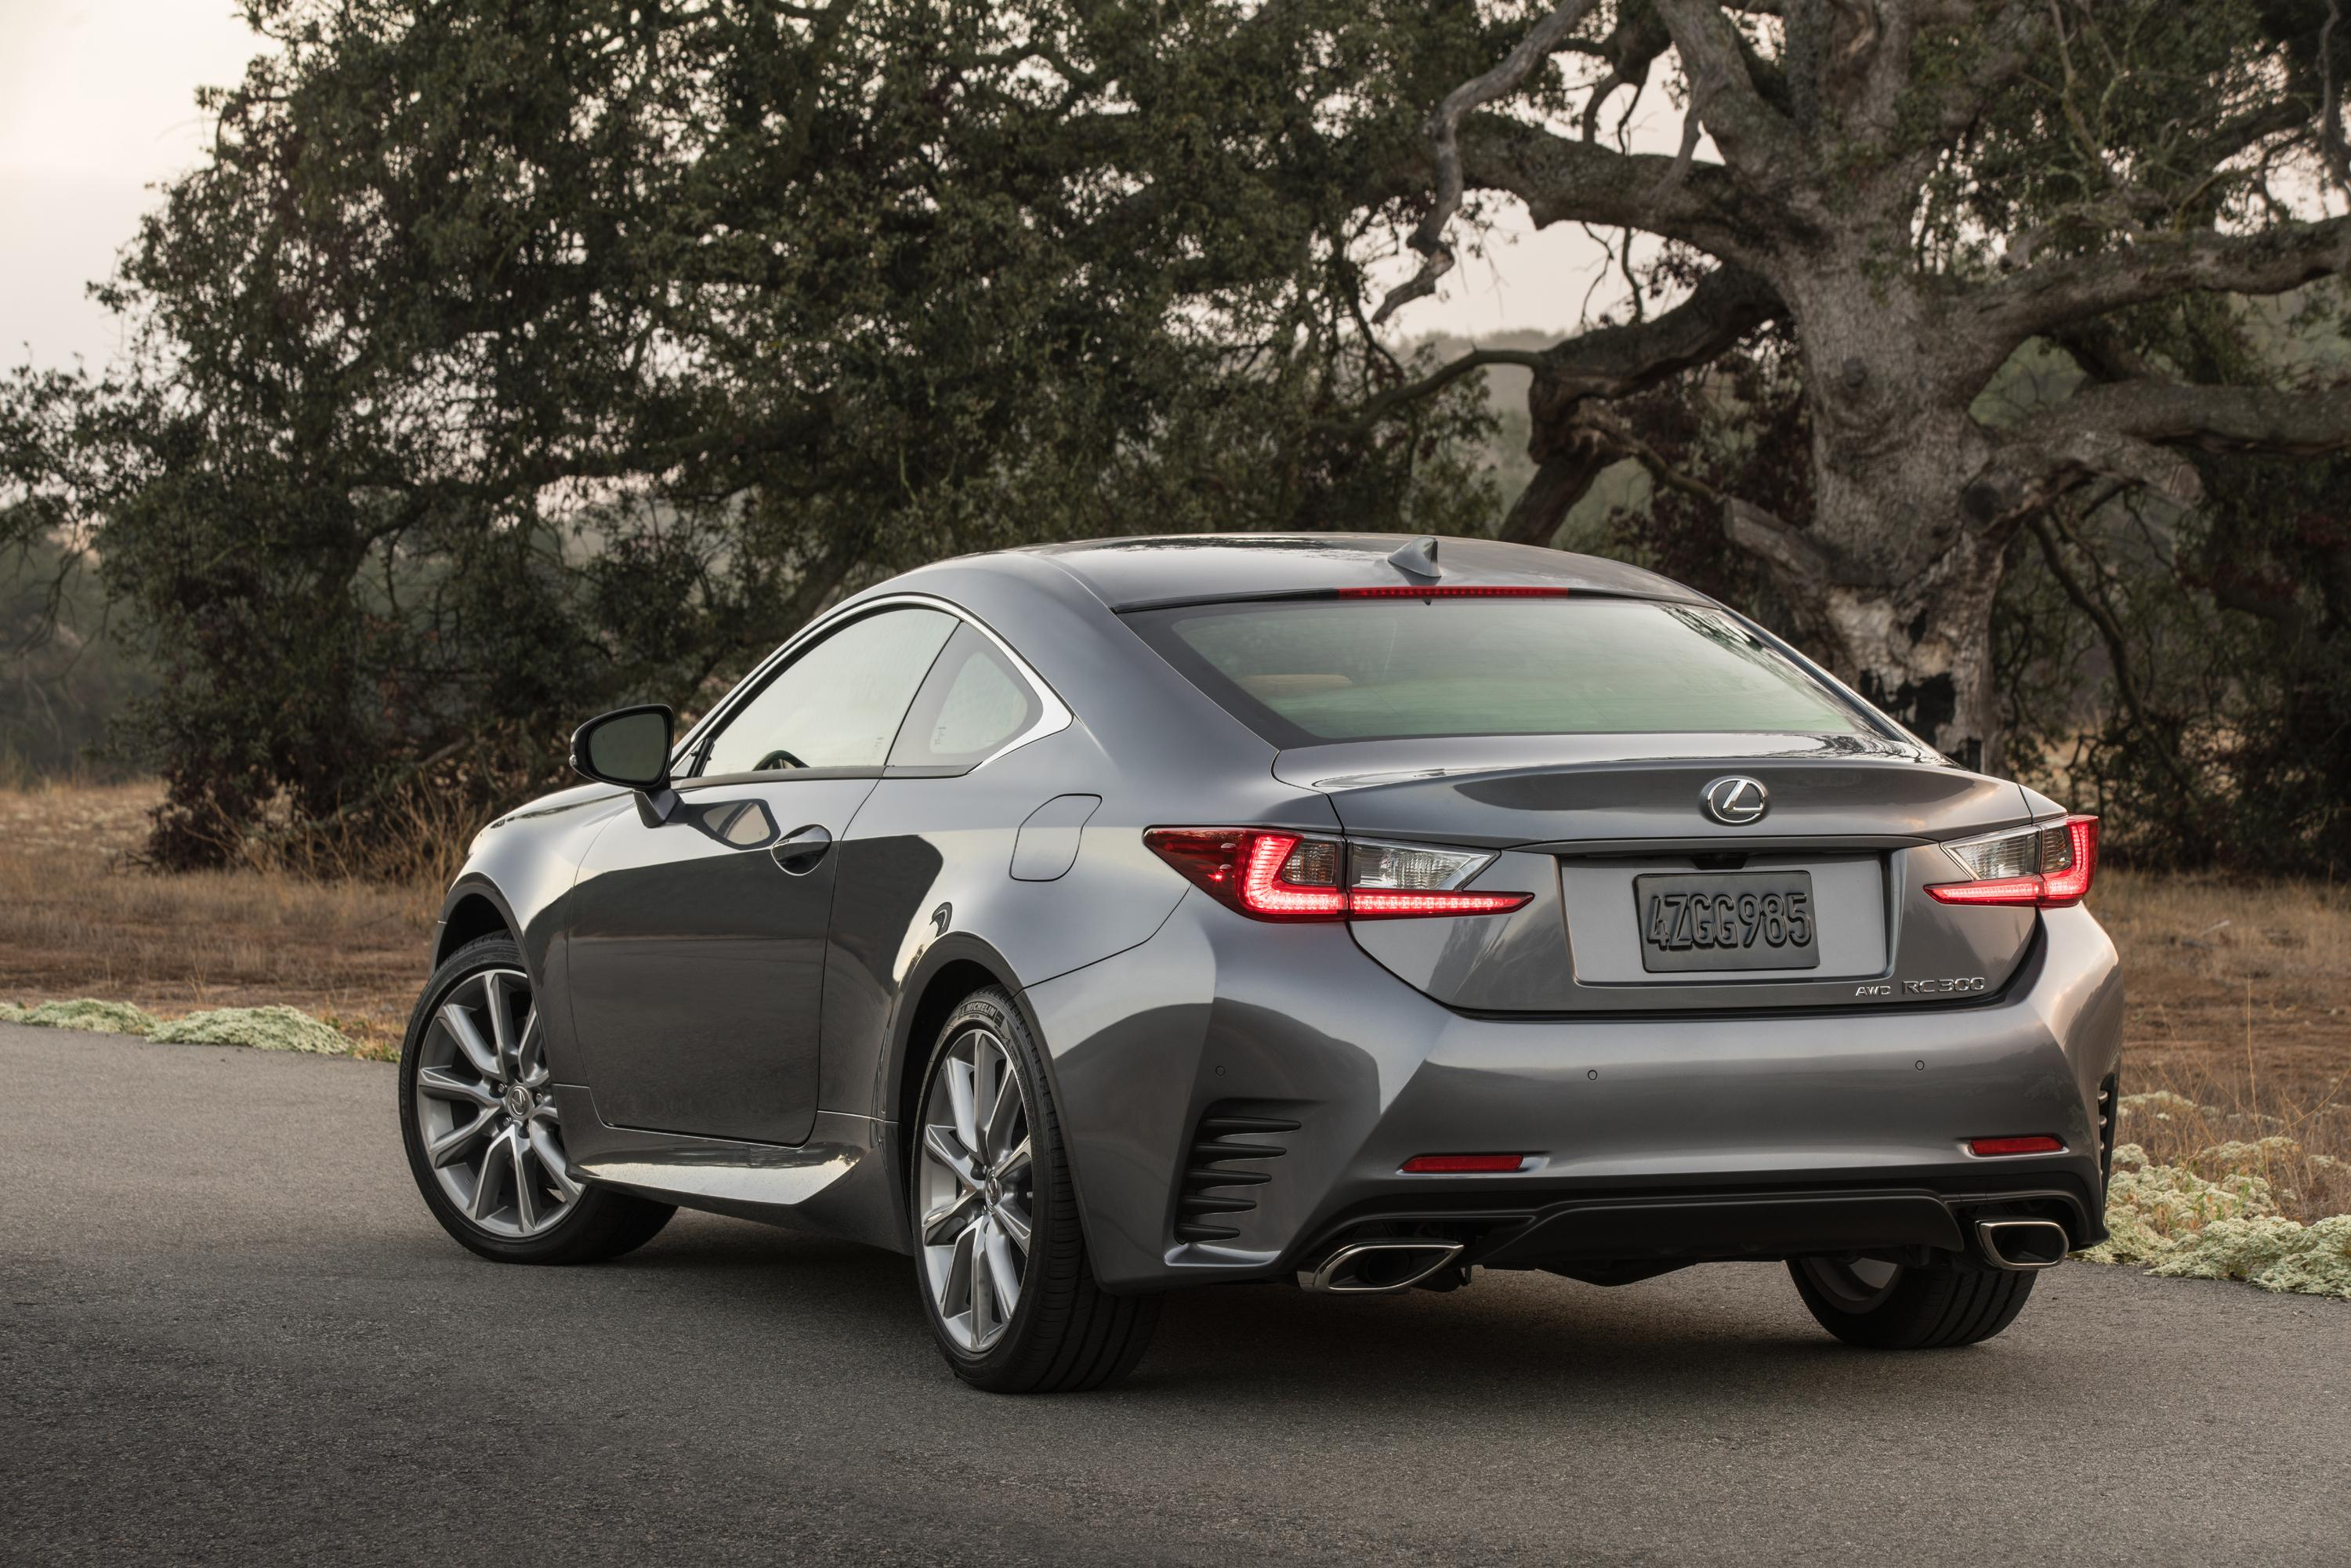 2016 lexus rc coupe announced rc200t and rc300 awd added youwheel your car expert. Black Bedroom Furniture Sets. Home Design Ideas